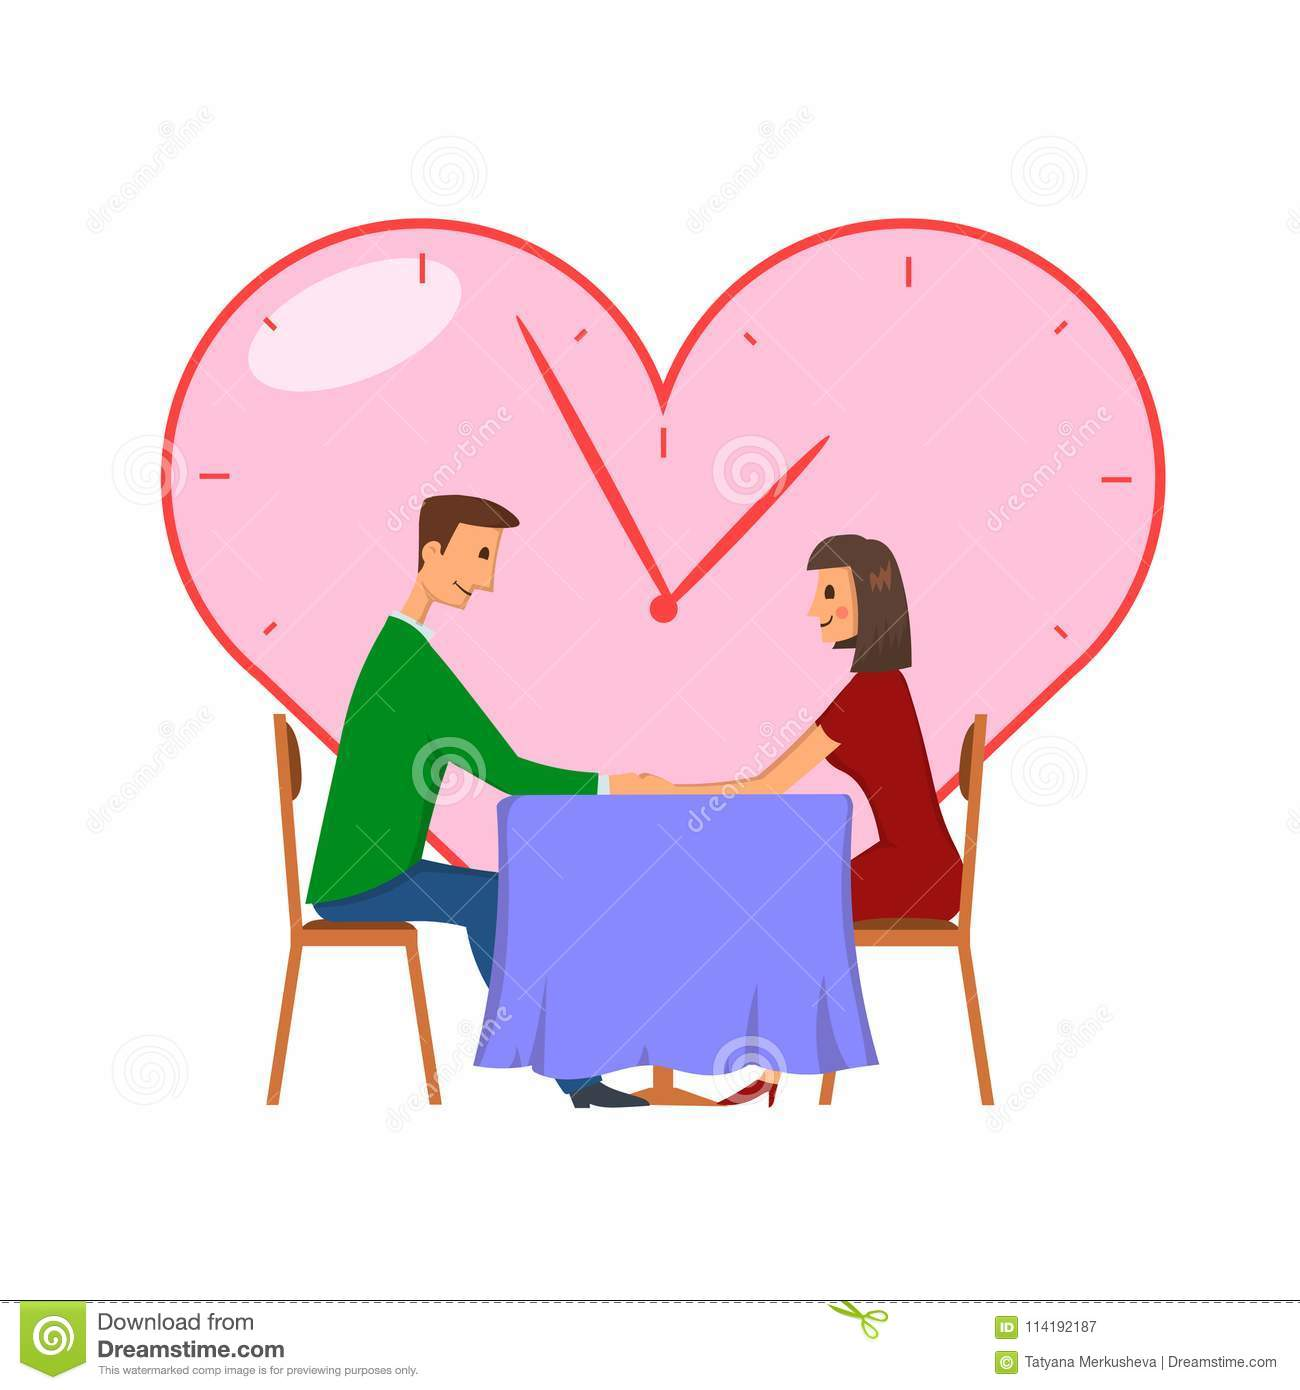 speed dating romance cross out party matchmaking